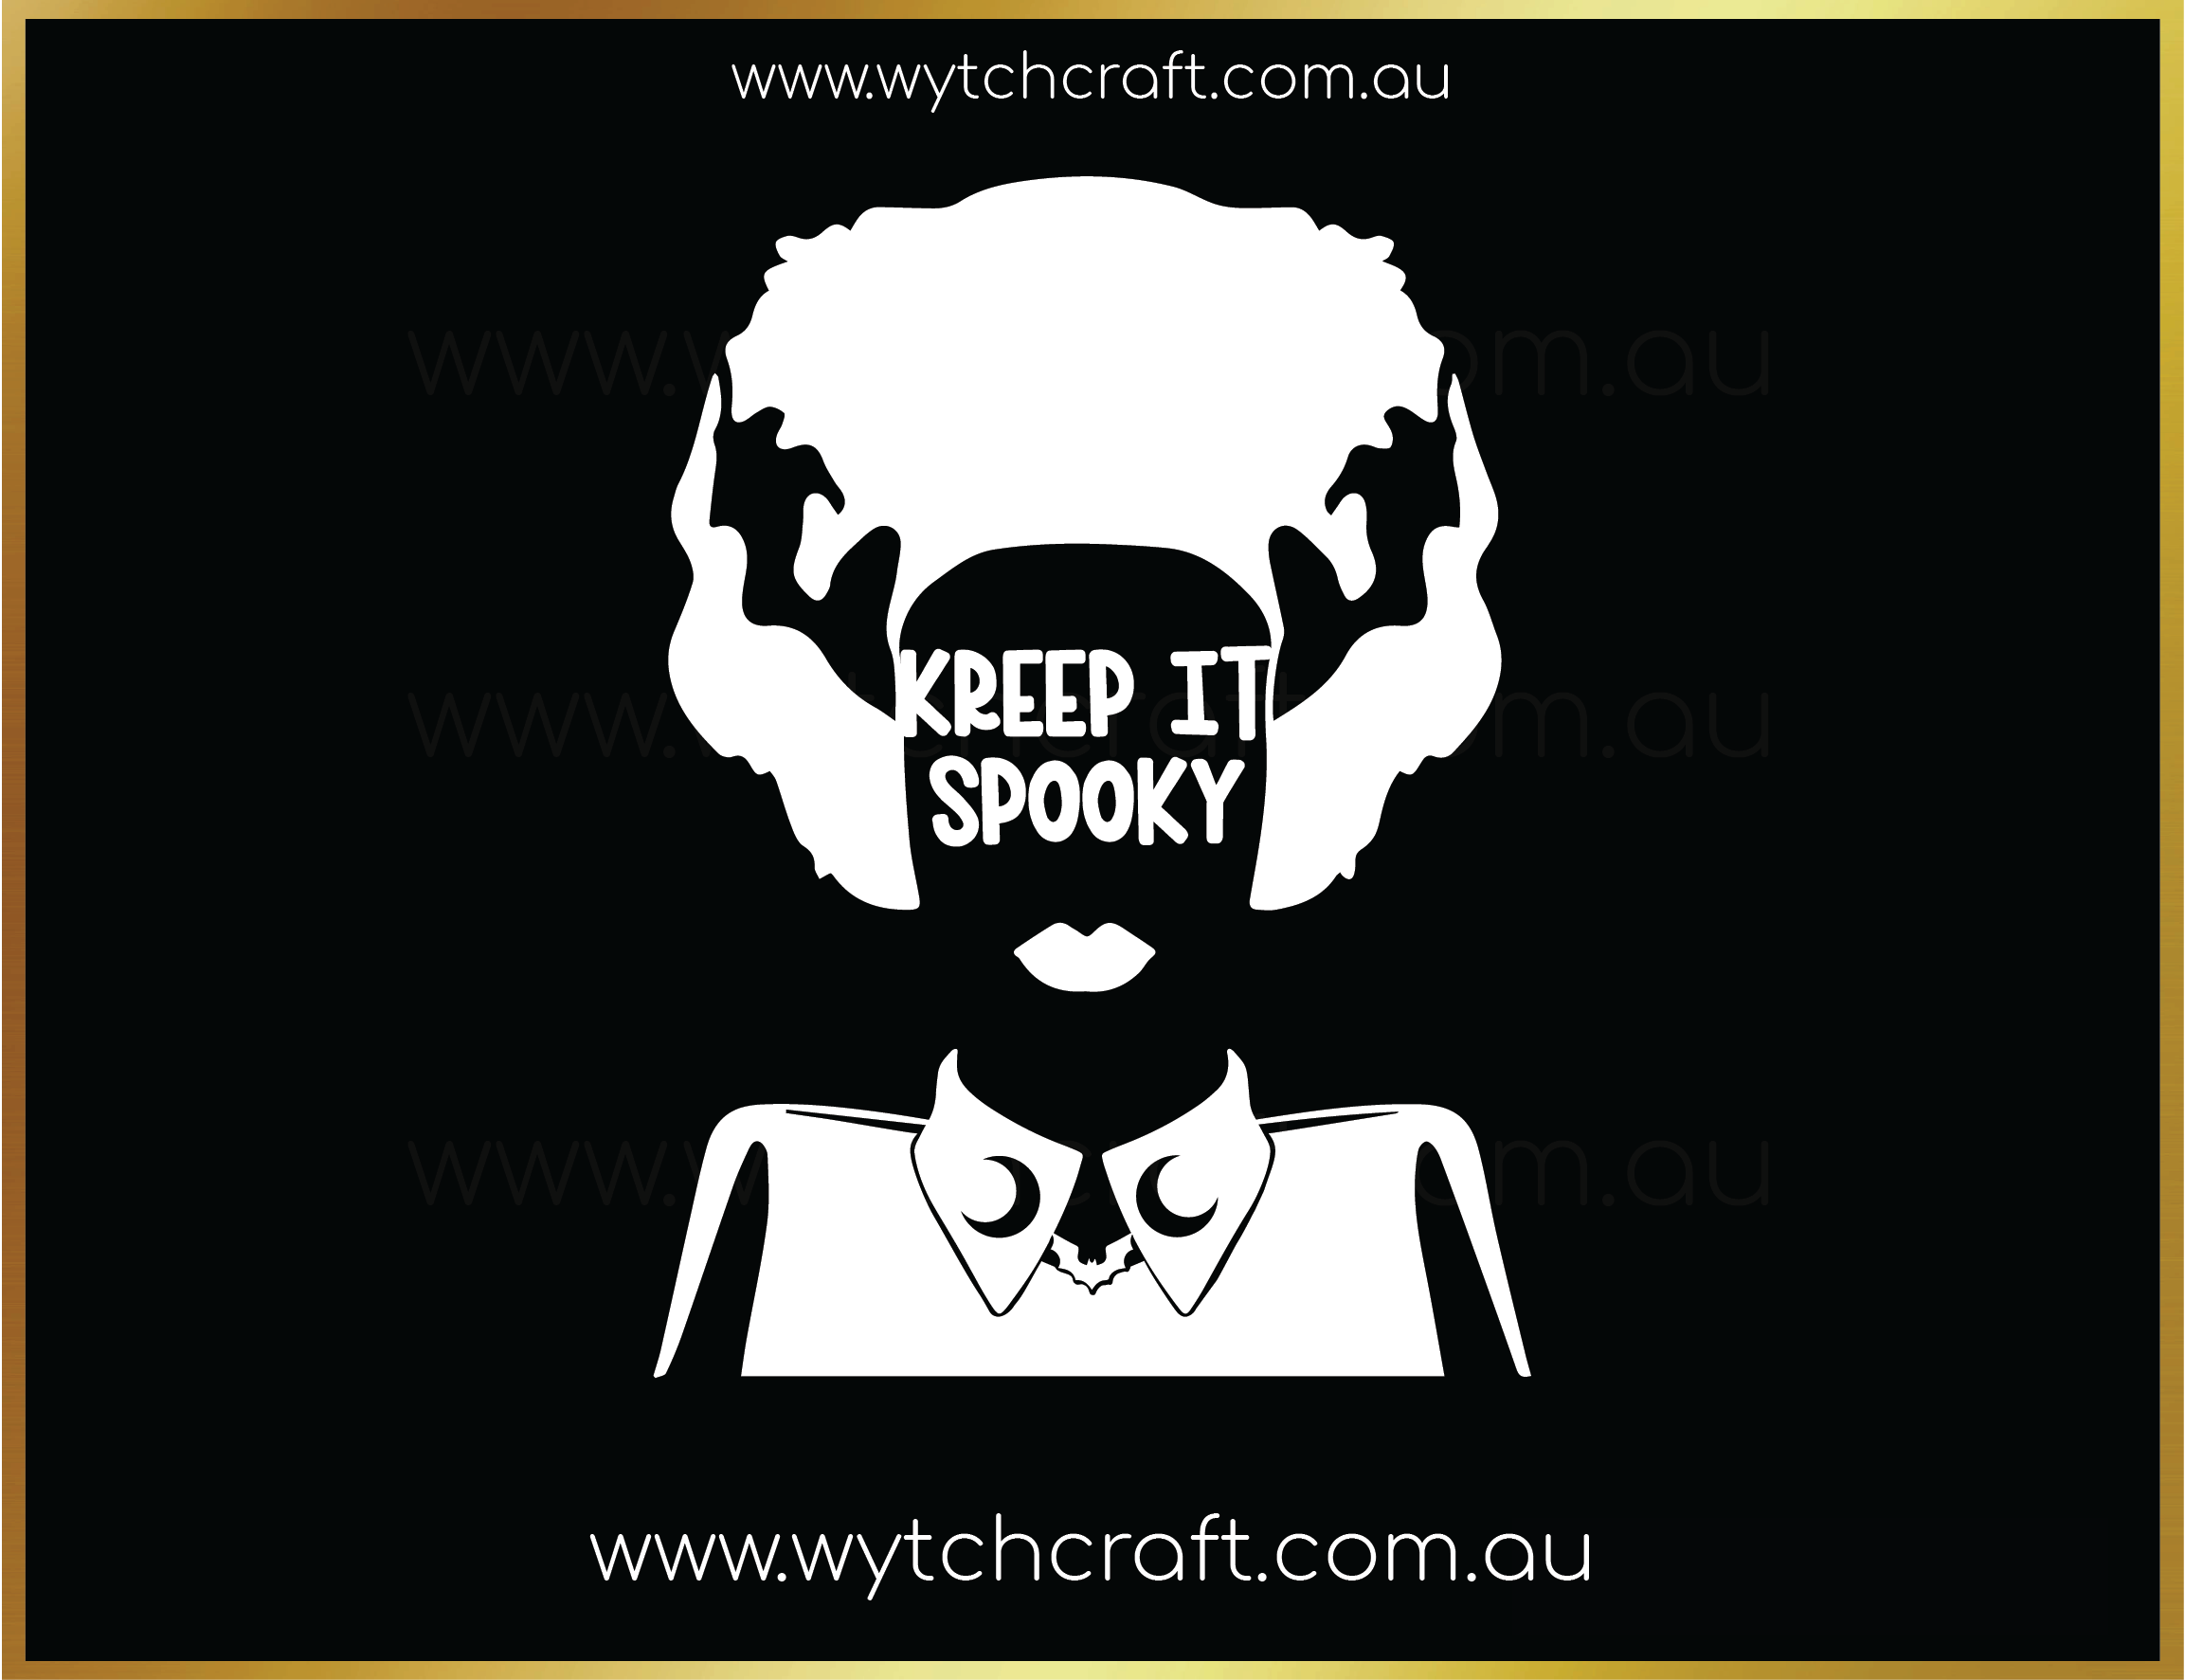 Kreep It Spooky Frankensteins Bride Sticker